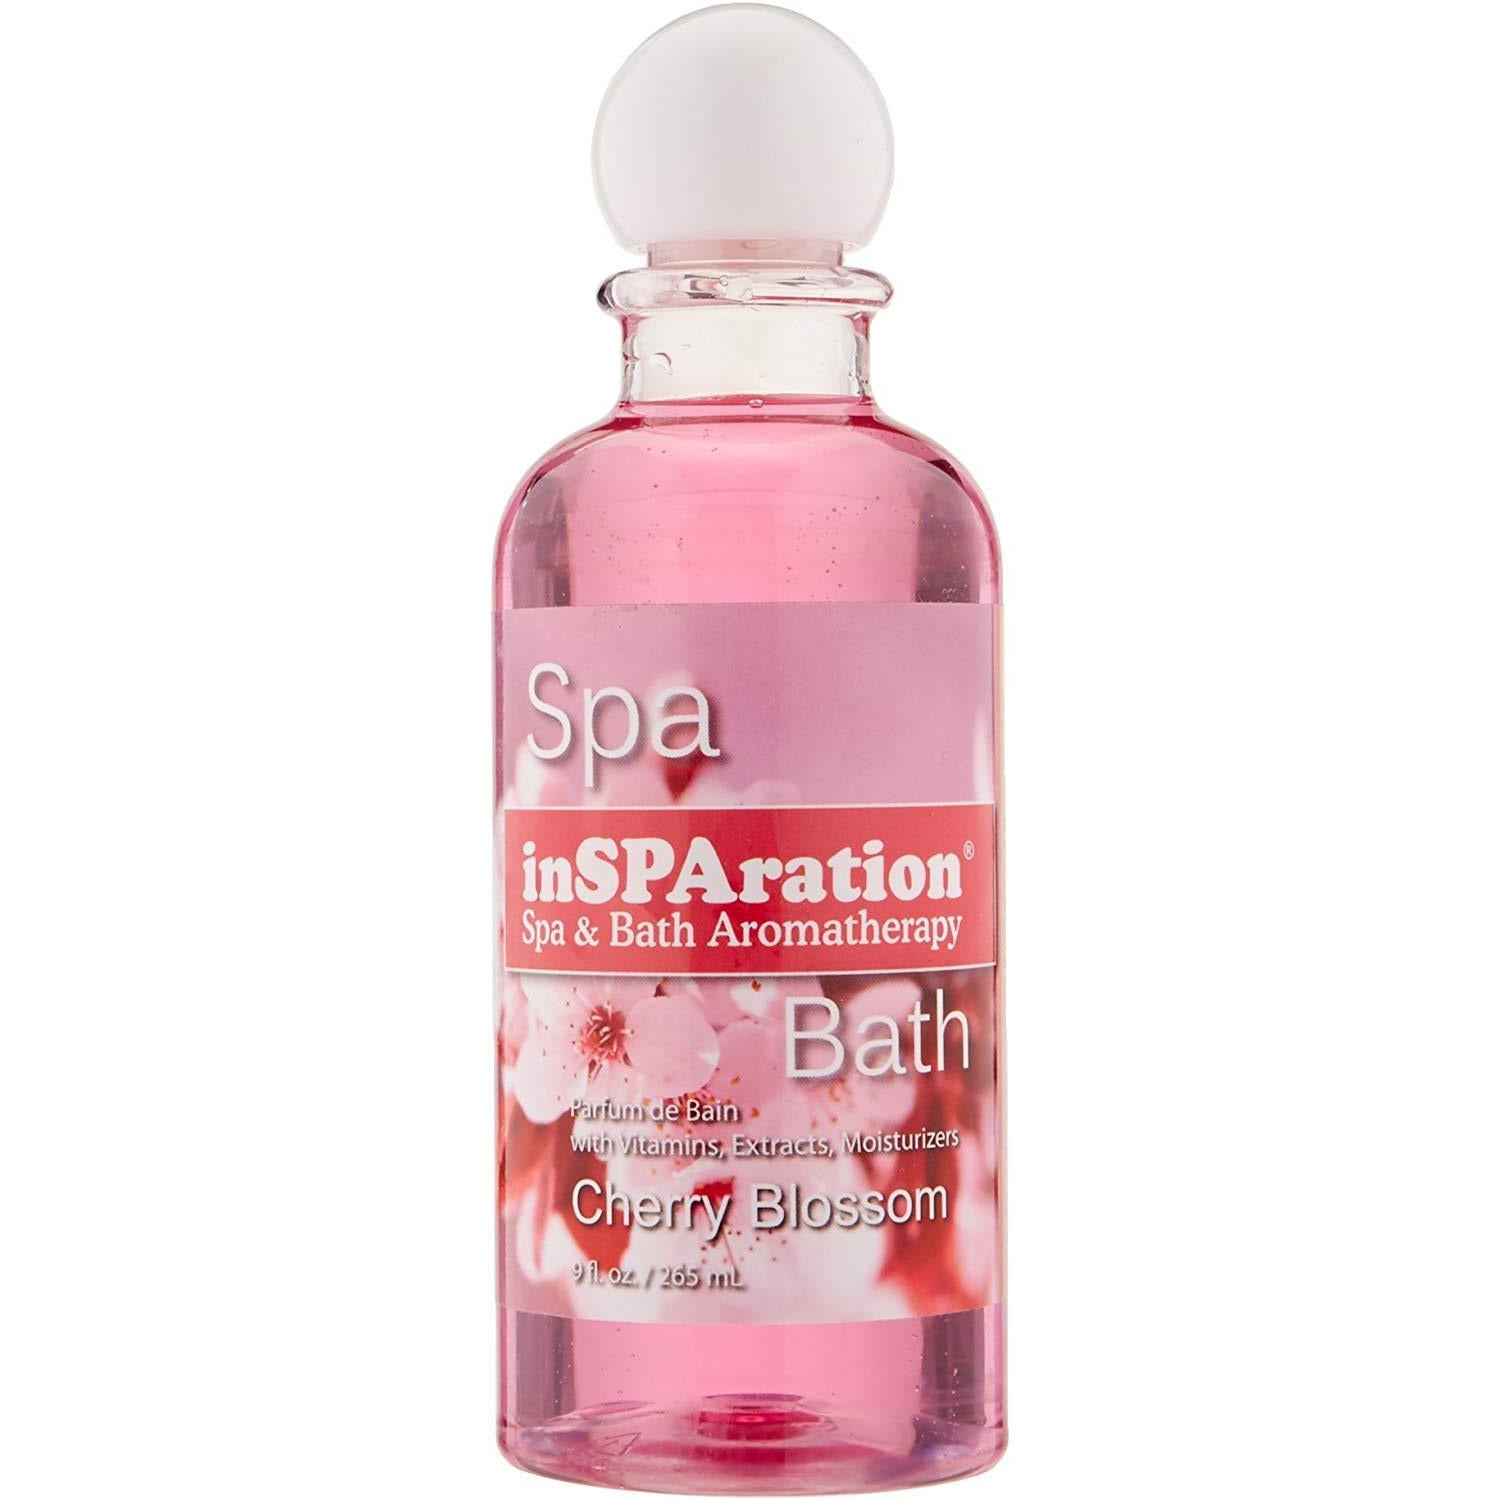 InSPAration Spa & Bath Cherry Blossom Fragrance 9 oz Bottle